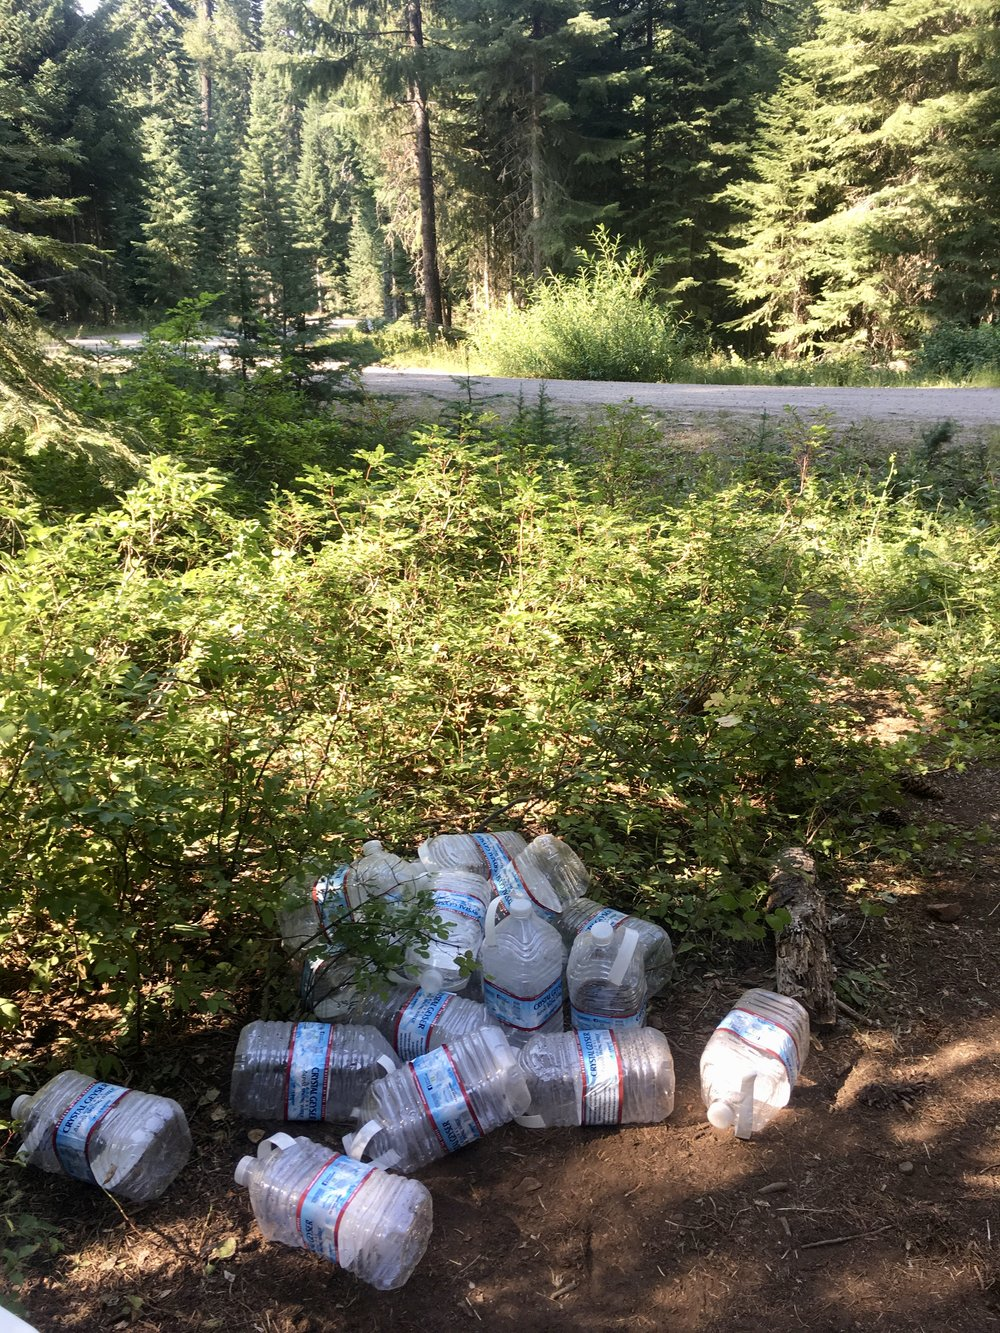 Despite what we heard from others, this water cache in Oregon turned up empty. For the next ten miles of exposed lava fields, I had only a 0.5 liter of water and learned a very valuable lesson that day.